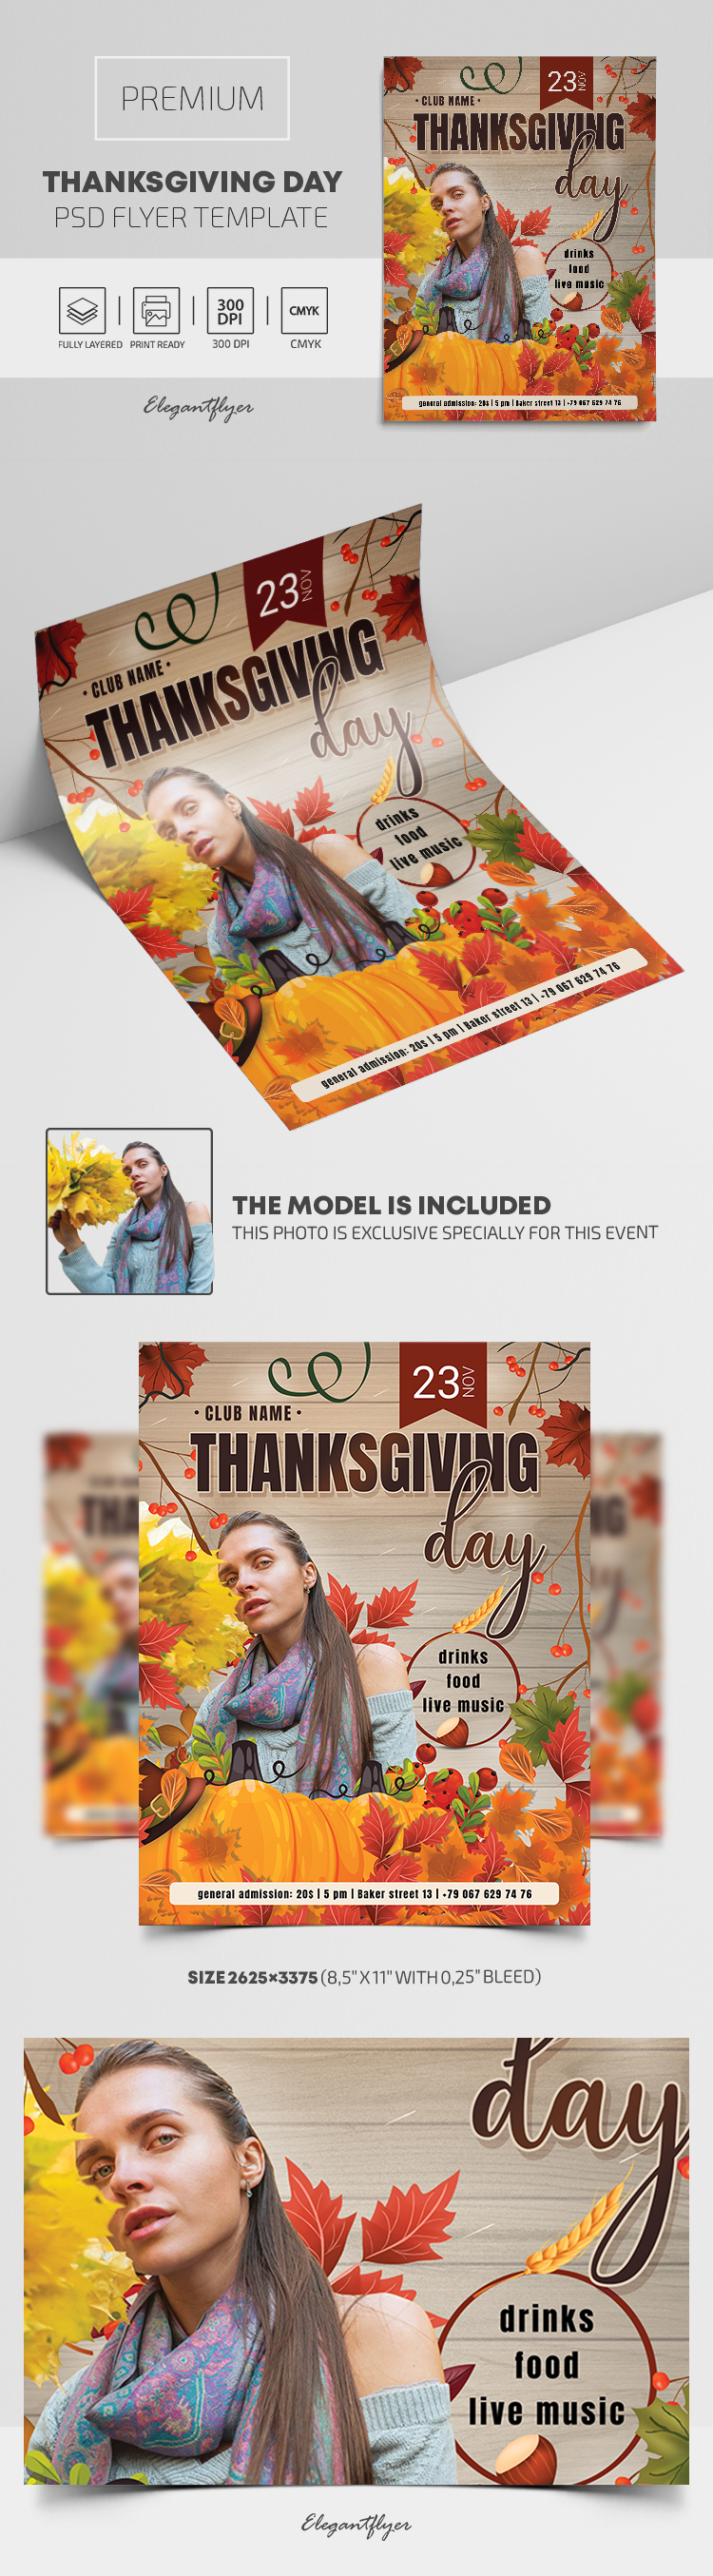 Thanksgiving Day – Premium PSD Flyer Template